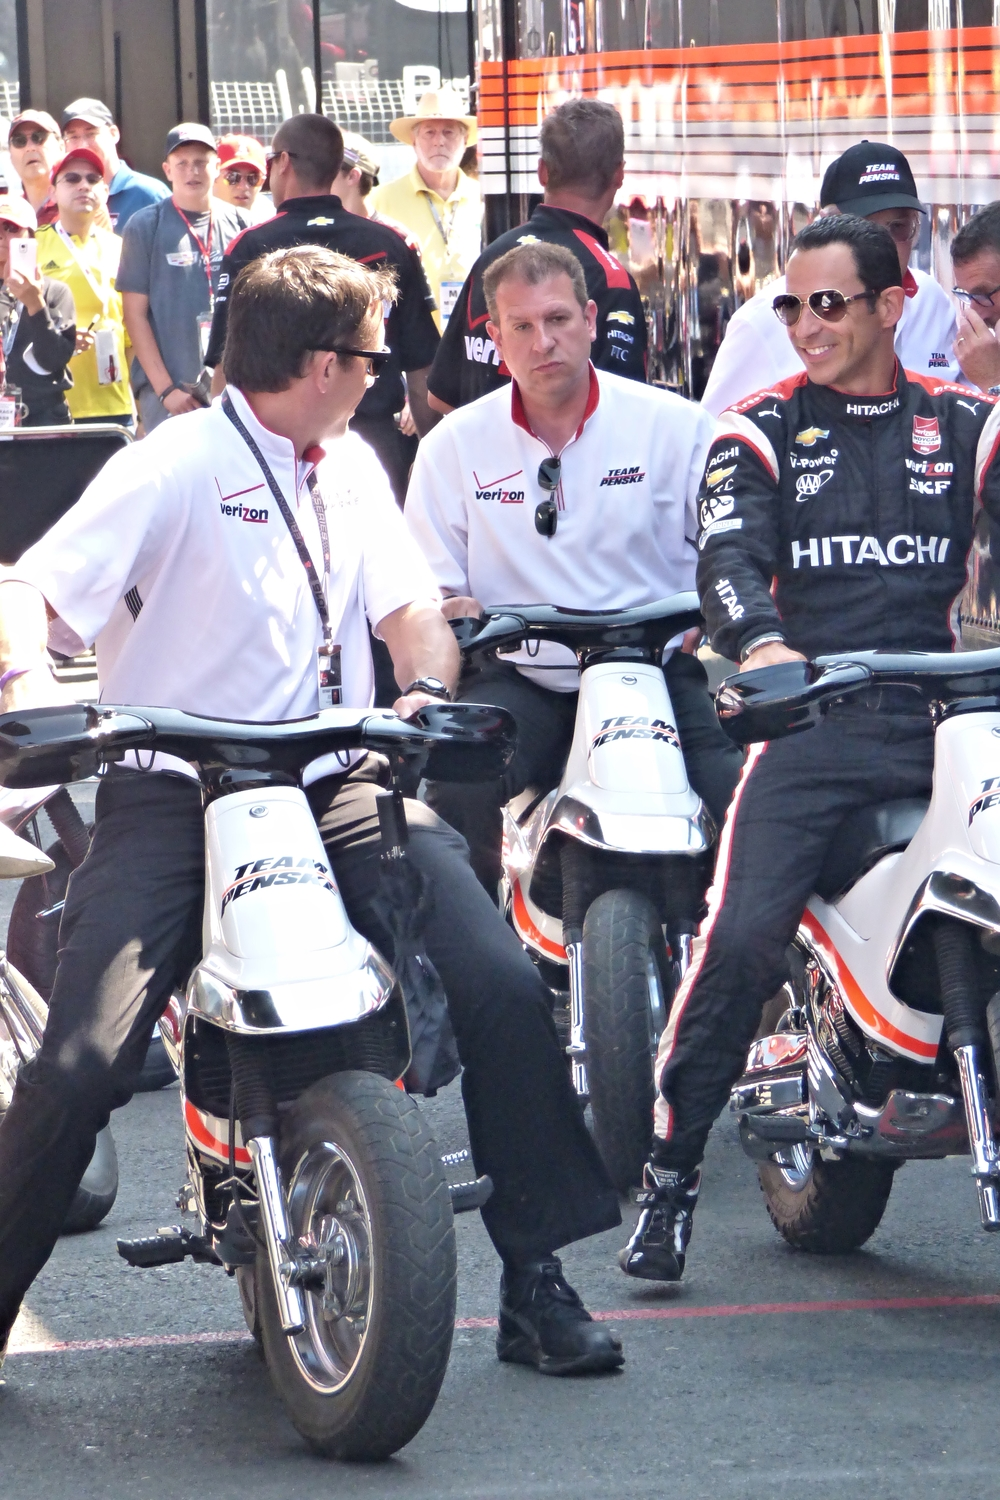 IndyCar biker gang getting ready to roll!